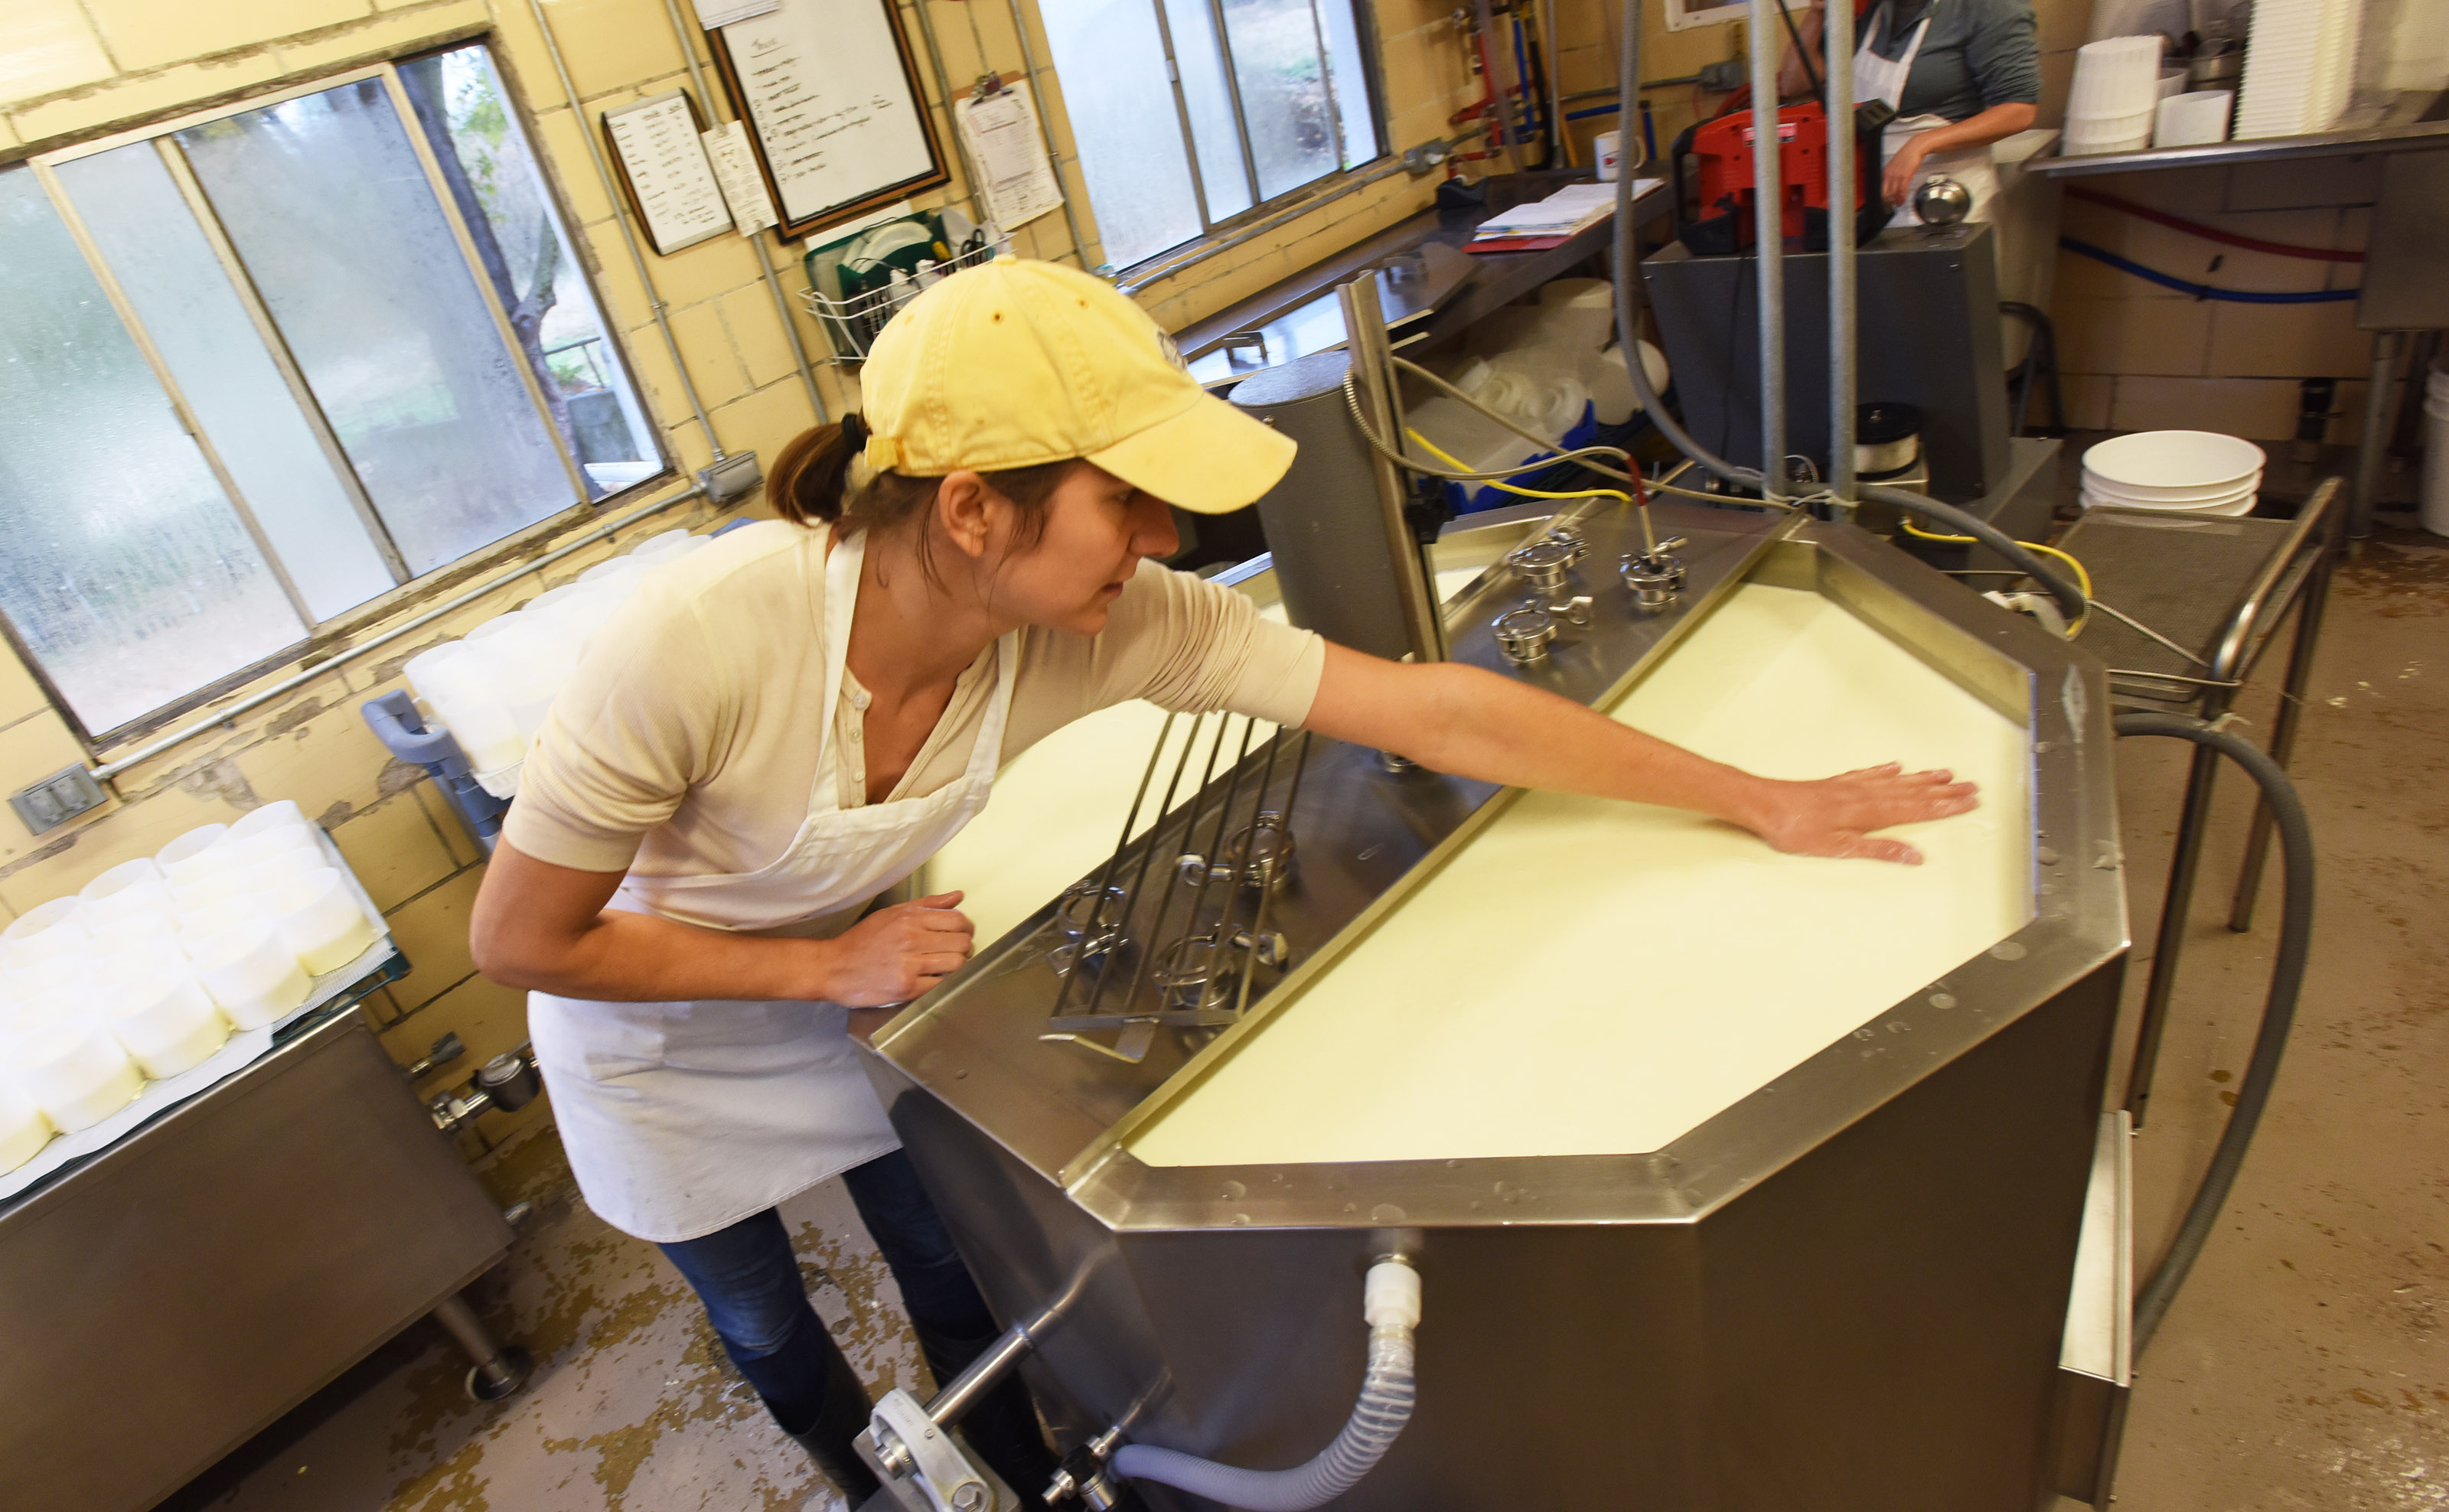 Cheese maker Stefanie Angstadt is shown working at her Oley cheese shop in Oley, Pa.